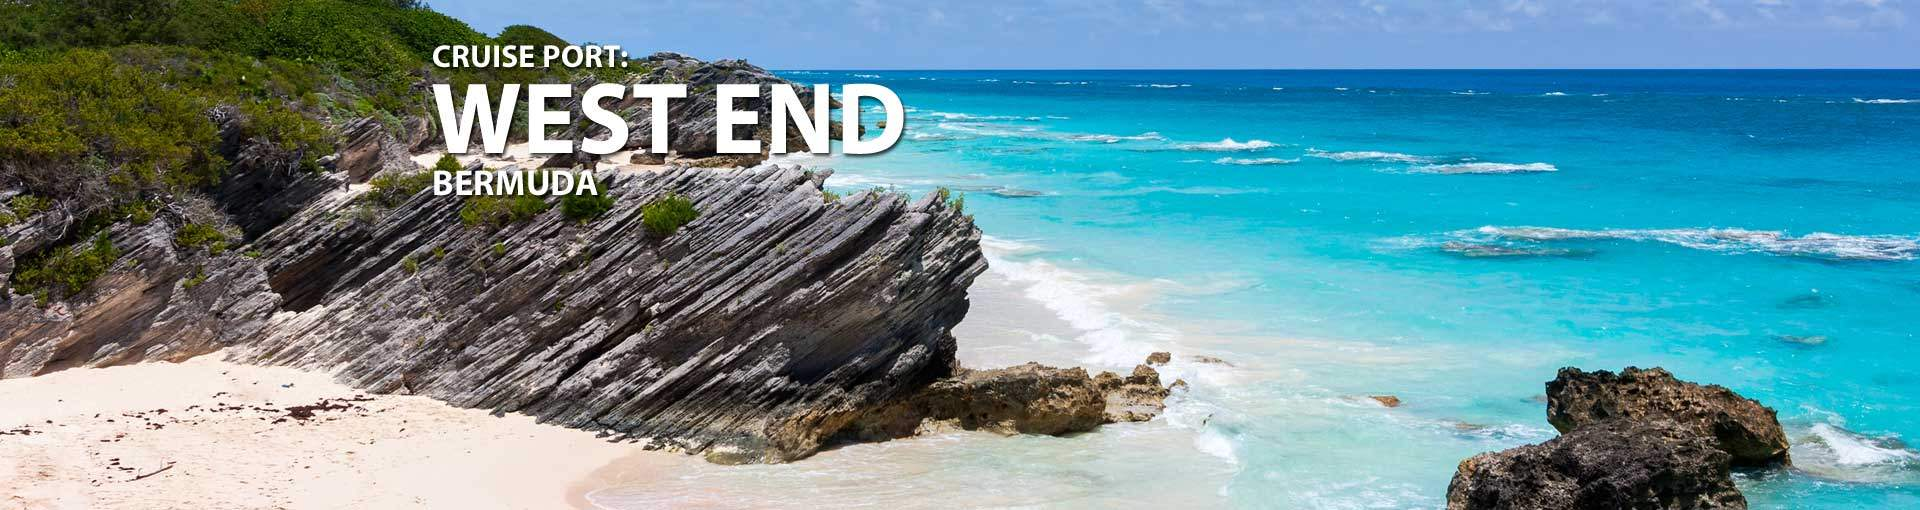 Cruises to West End, Bermuda